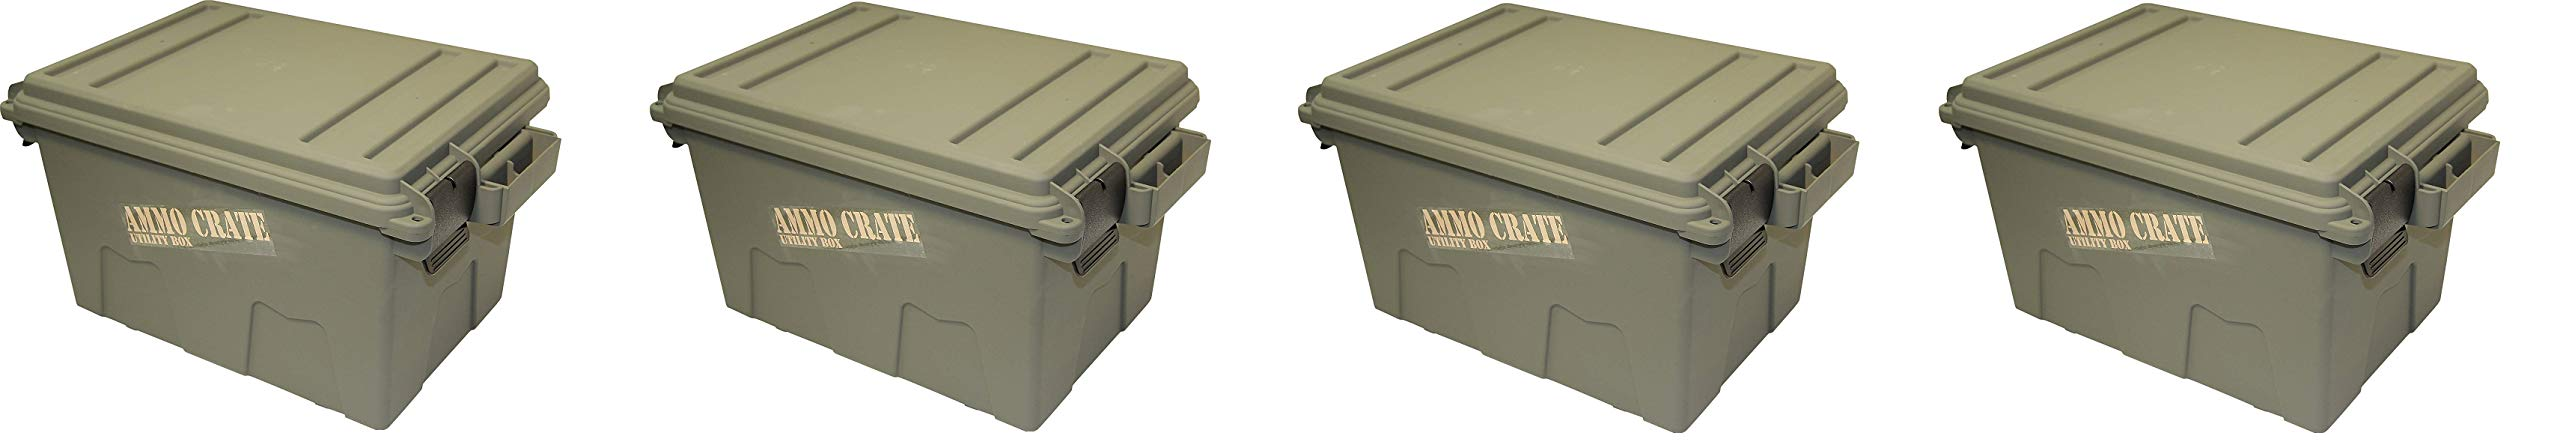 MTM ACR7-18 Ammo Crate Utility Box (Pack of 4)